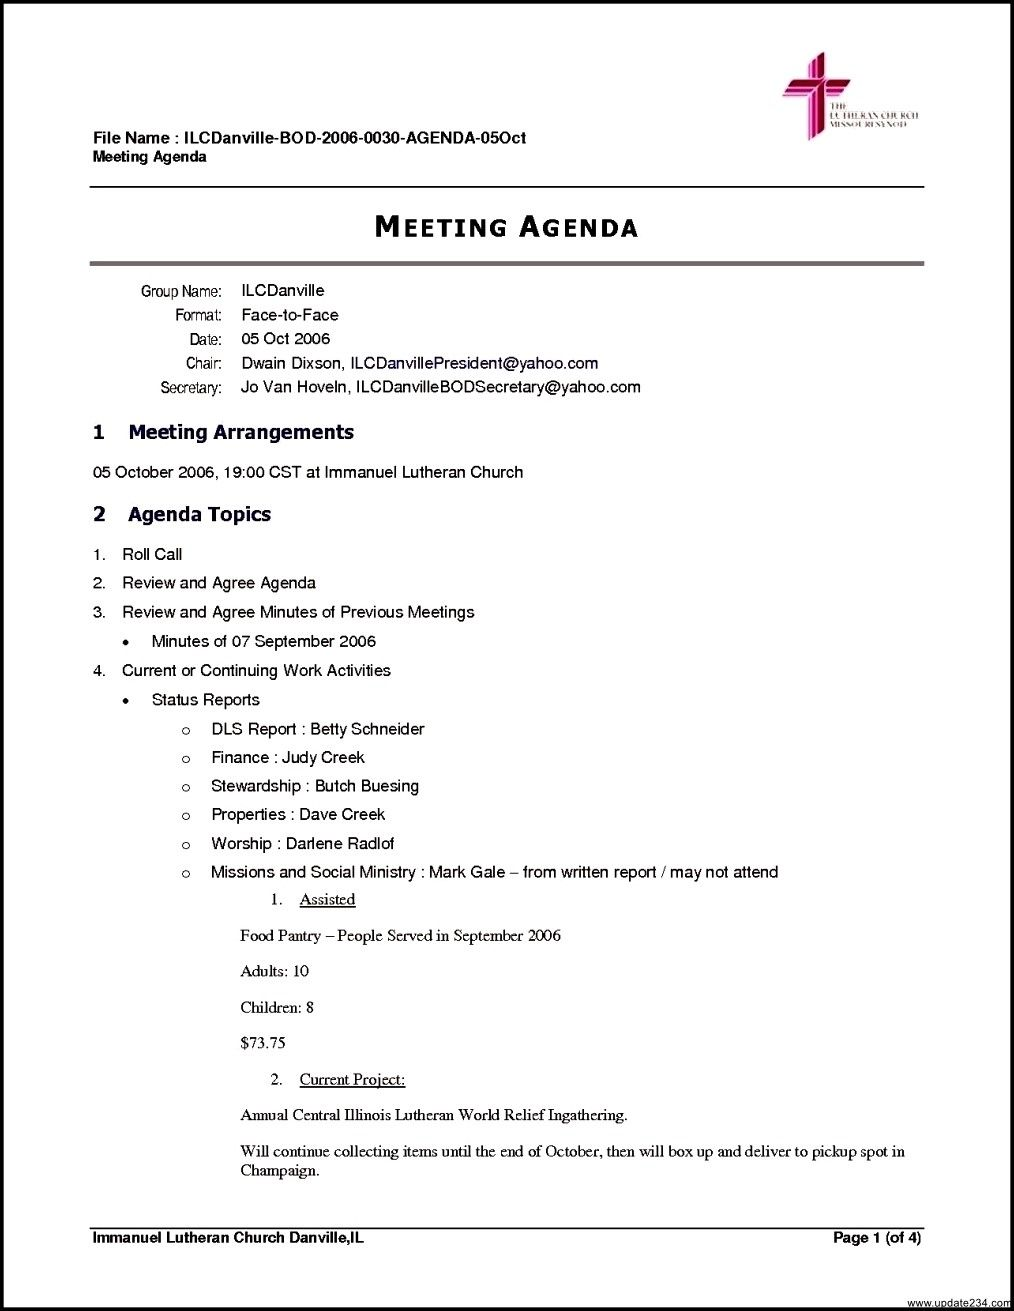 004 Template Ideas Meeting Agenda Free As Well Management In